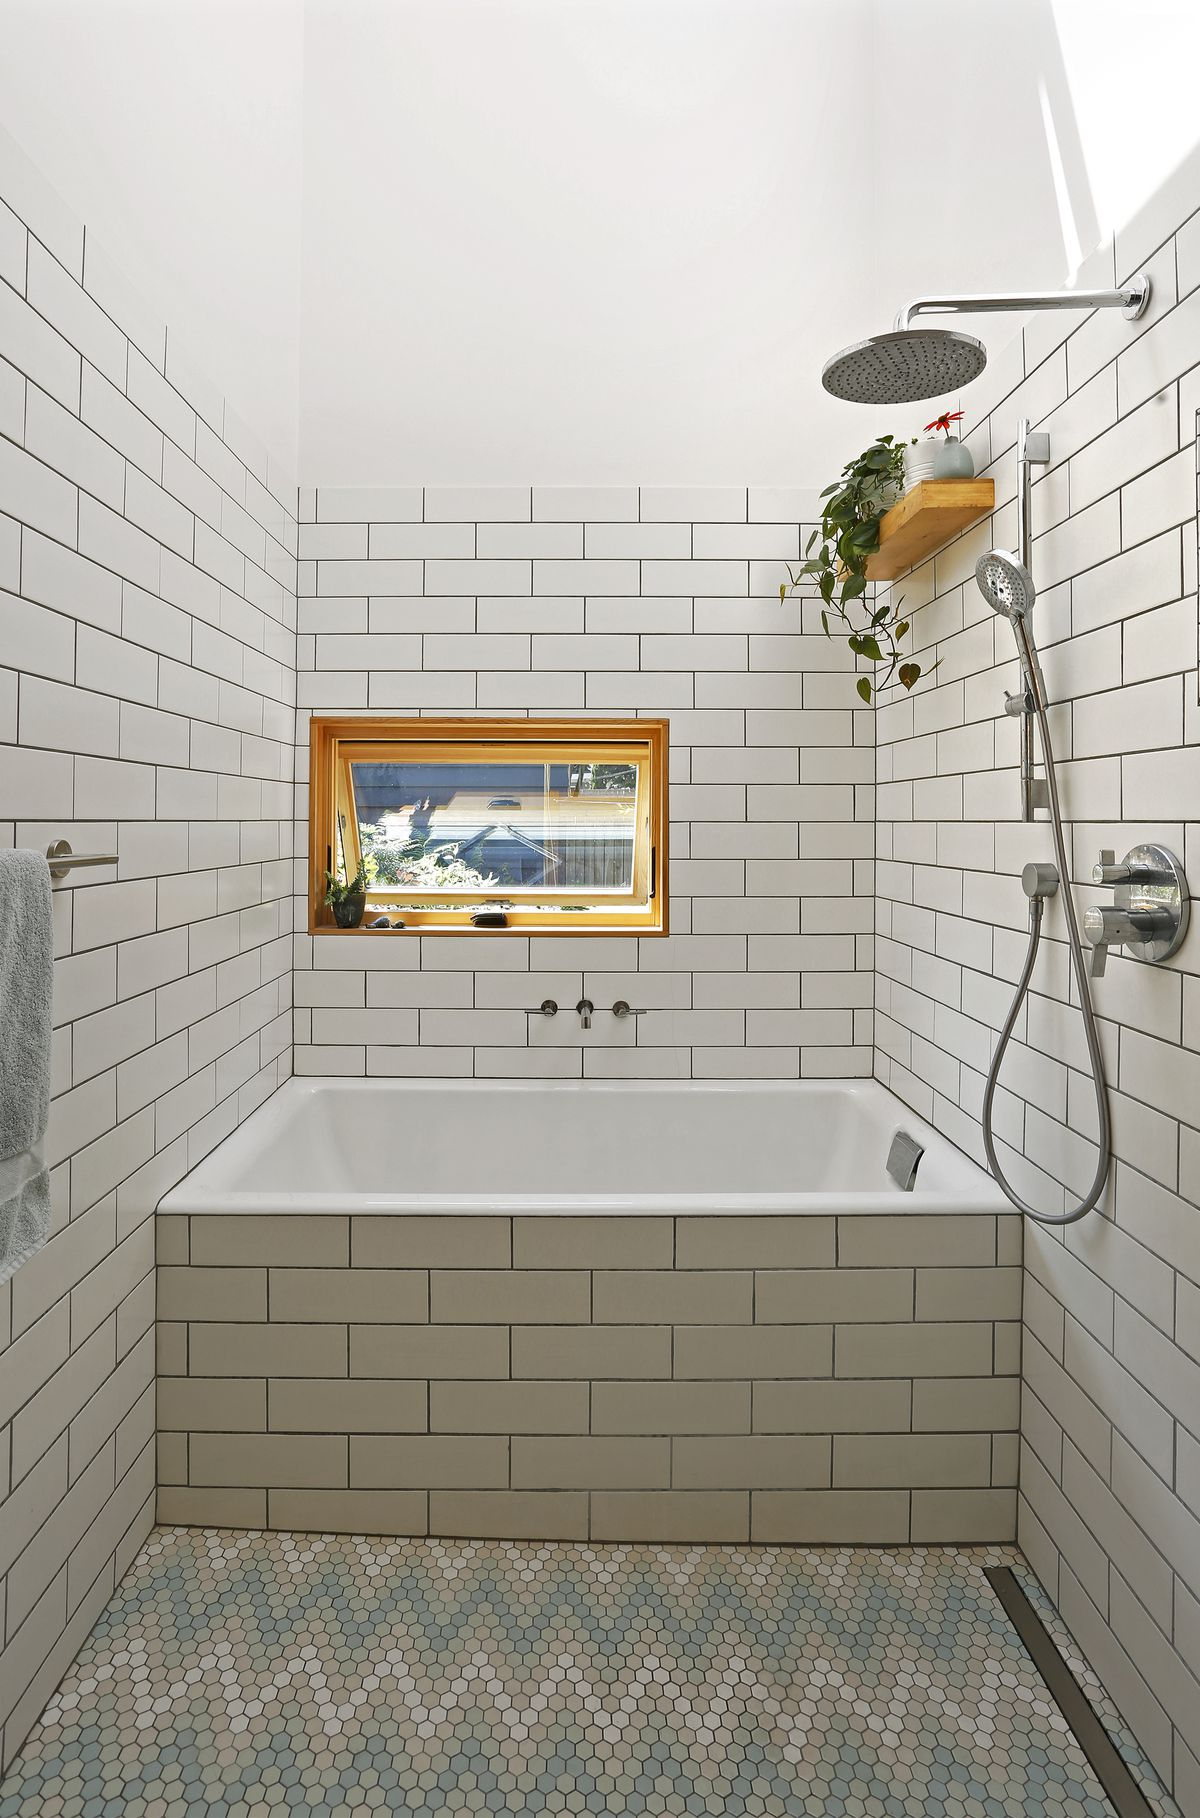 Bathroom with white subway tile walls.